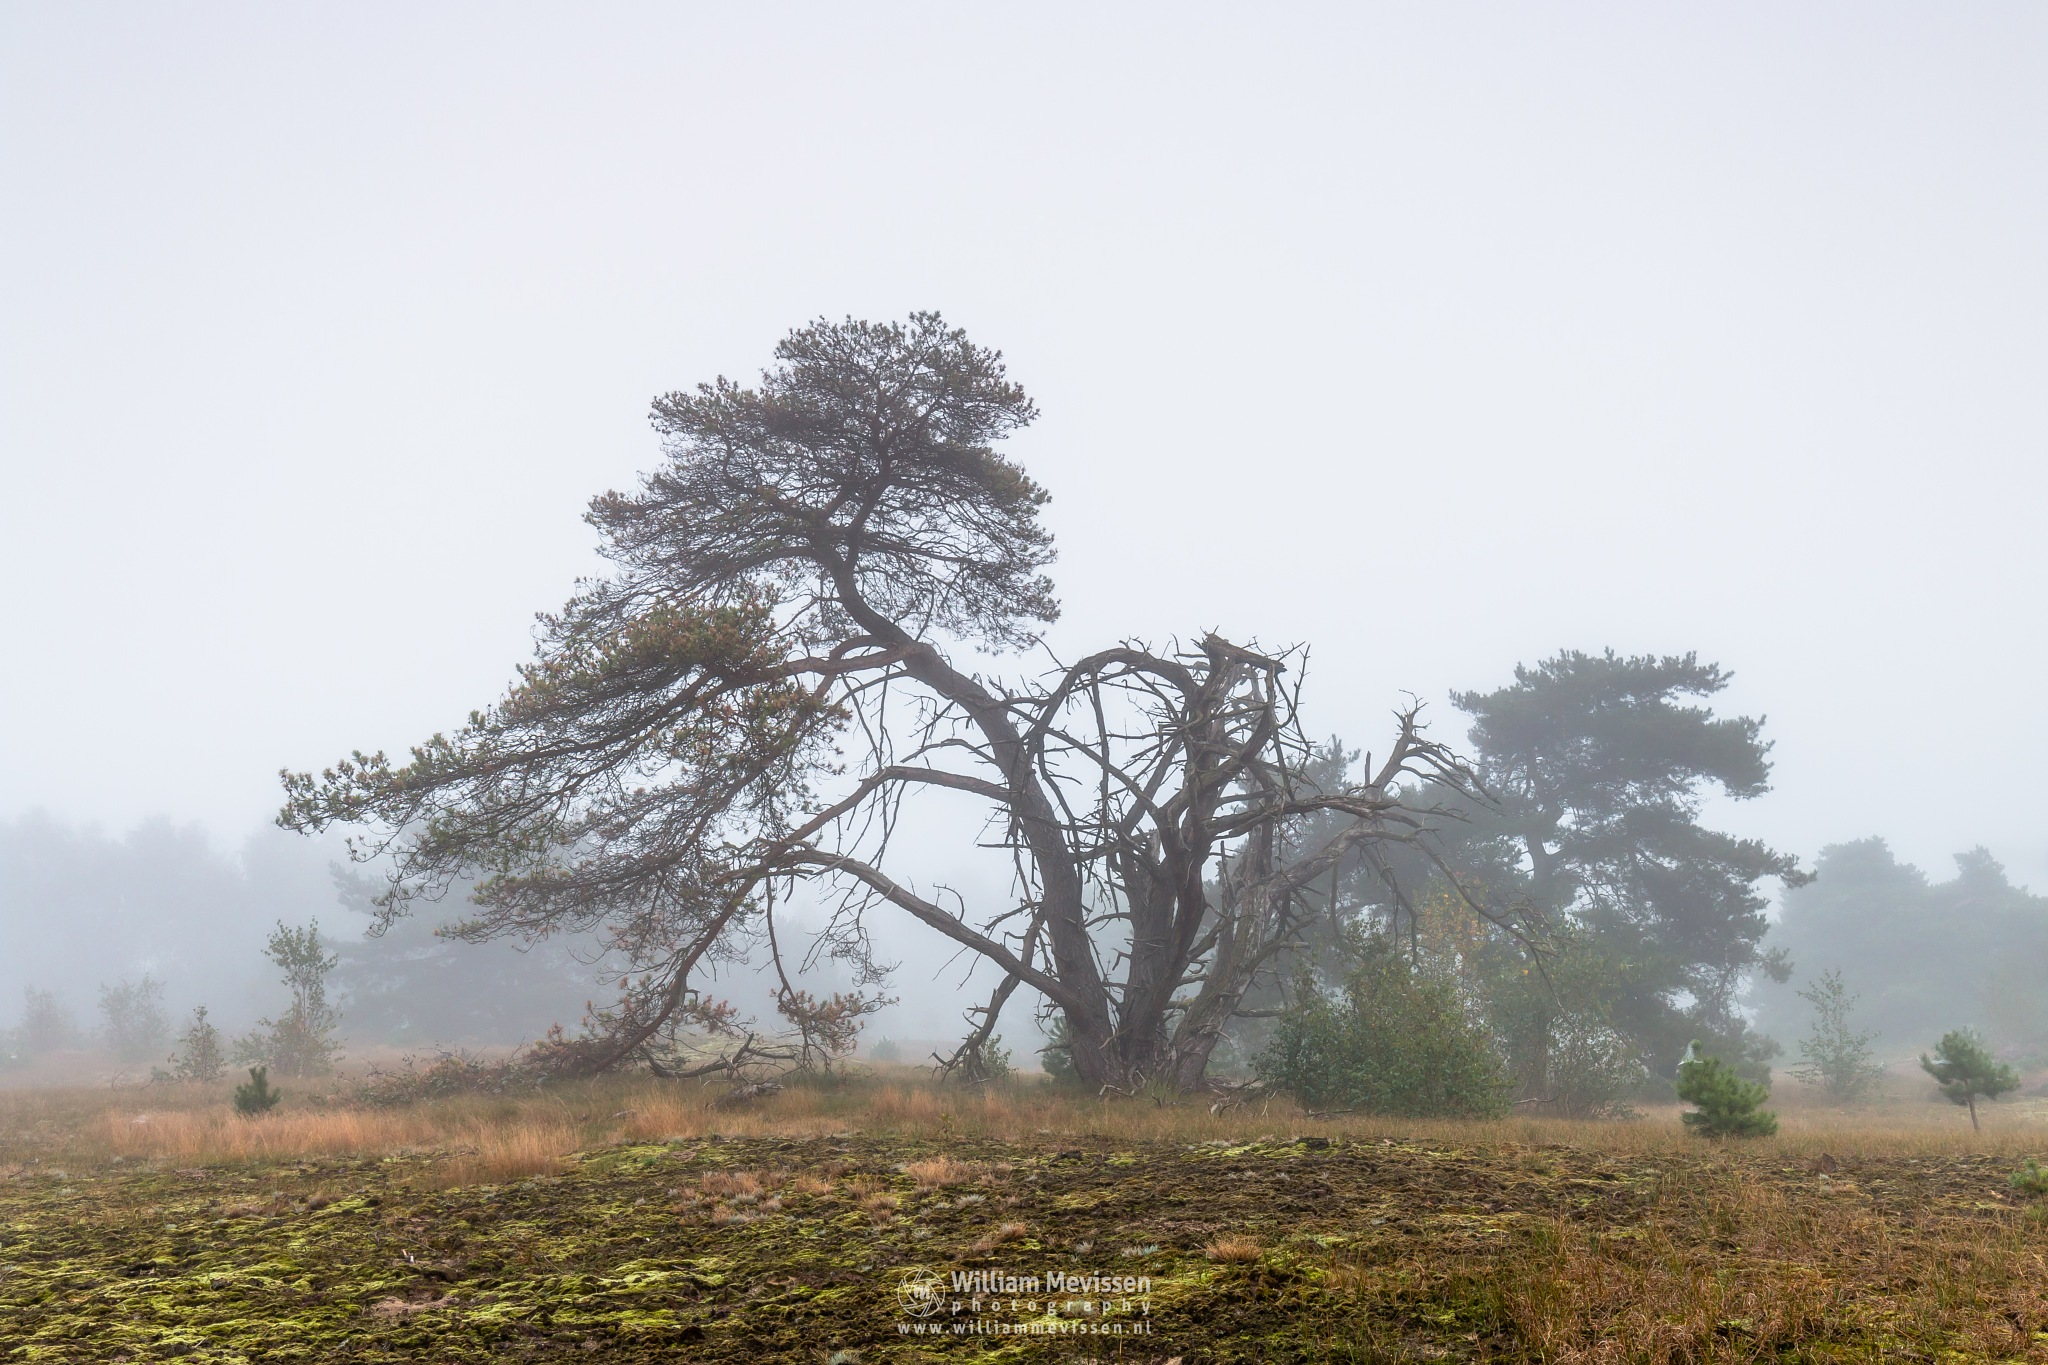 Half A Tree by William Mevissen